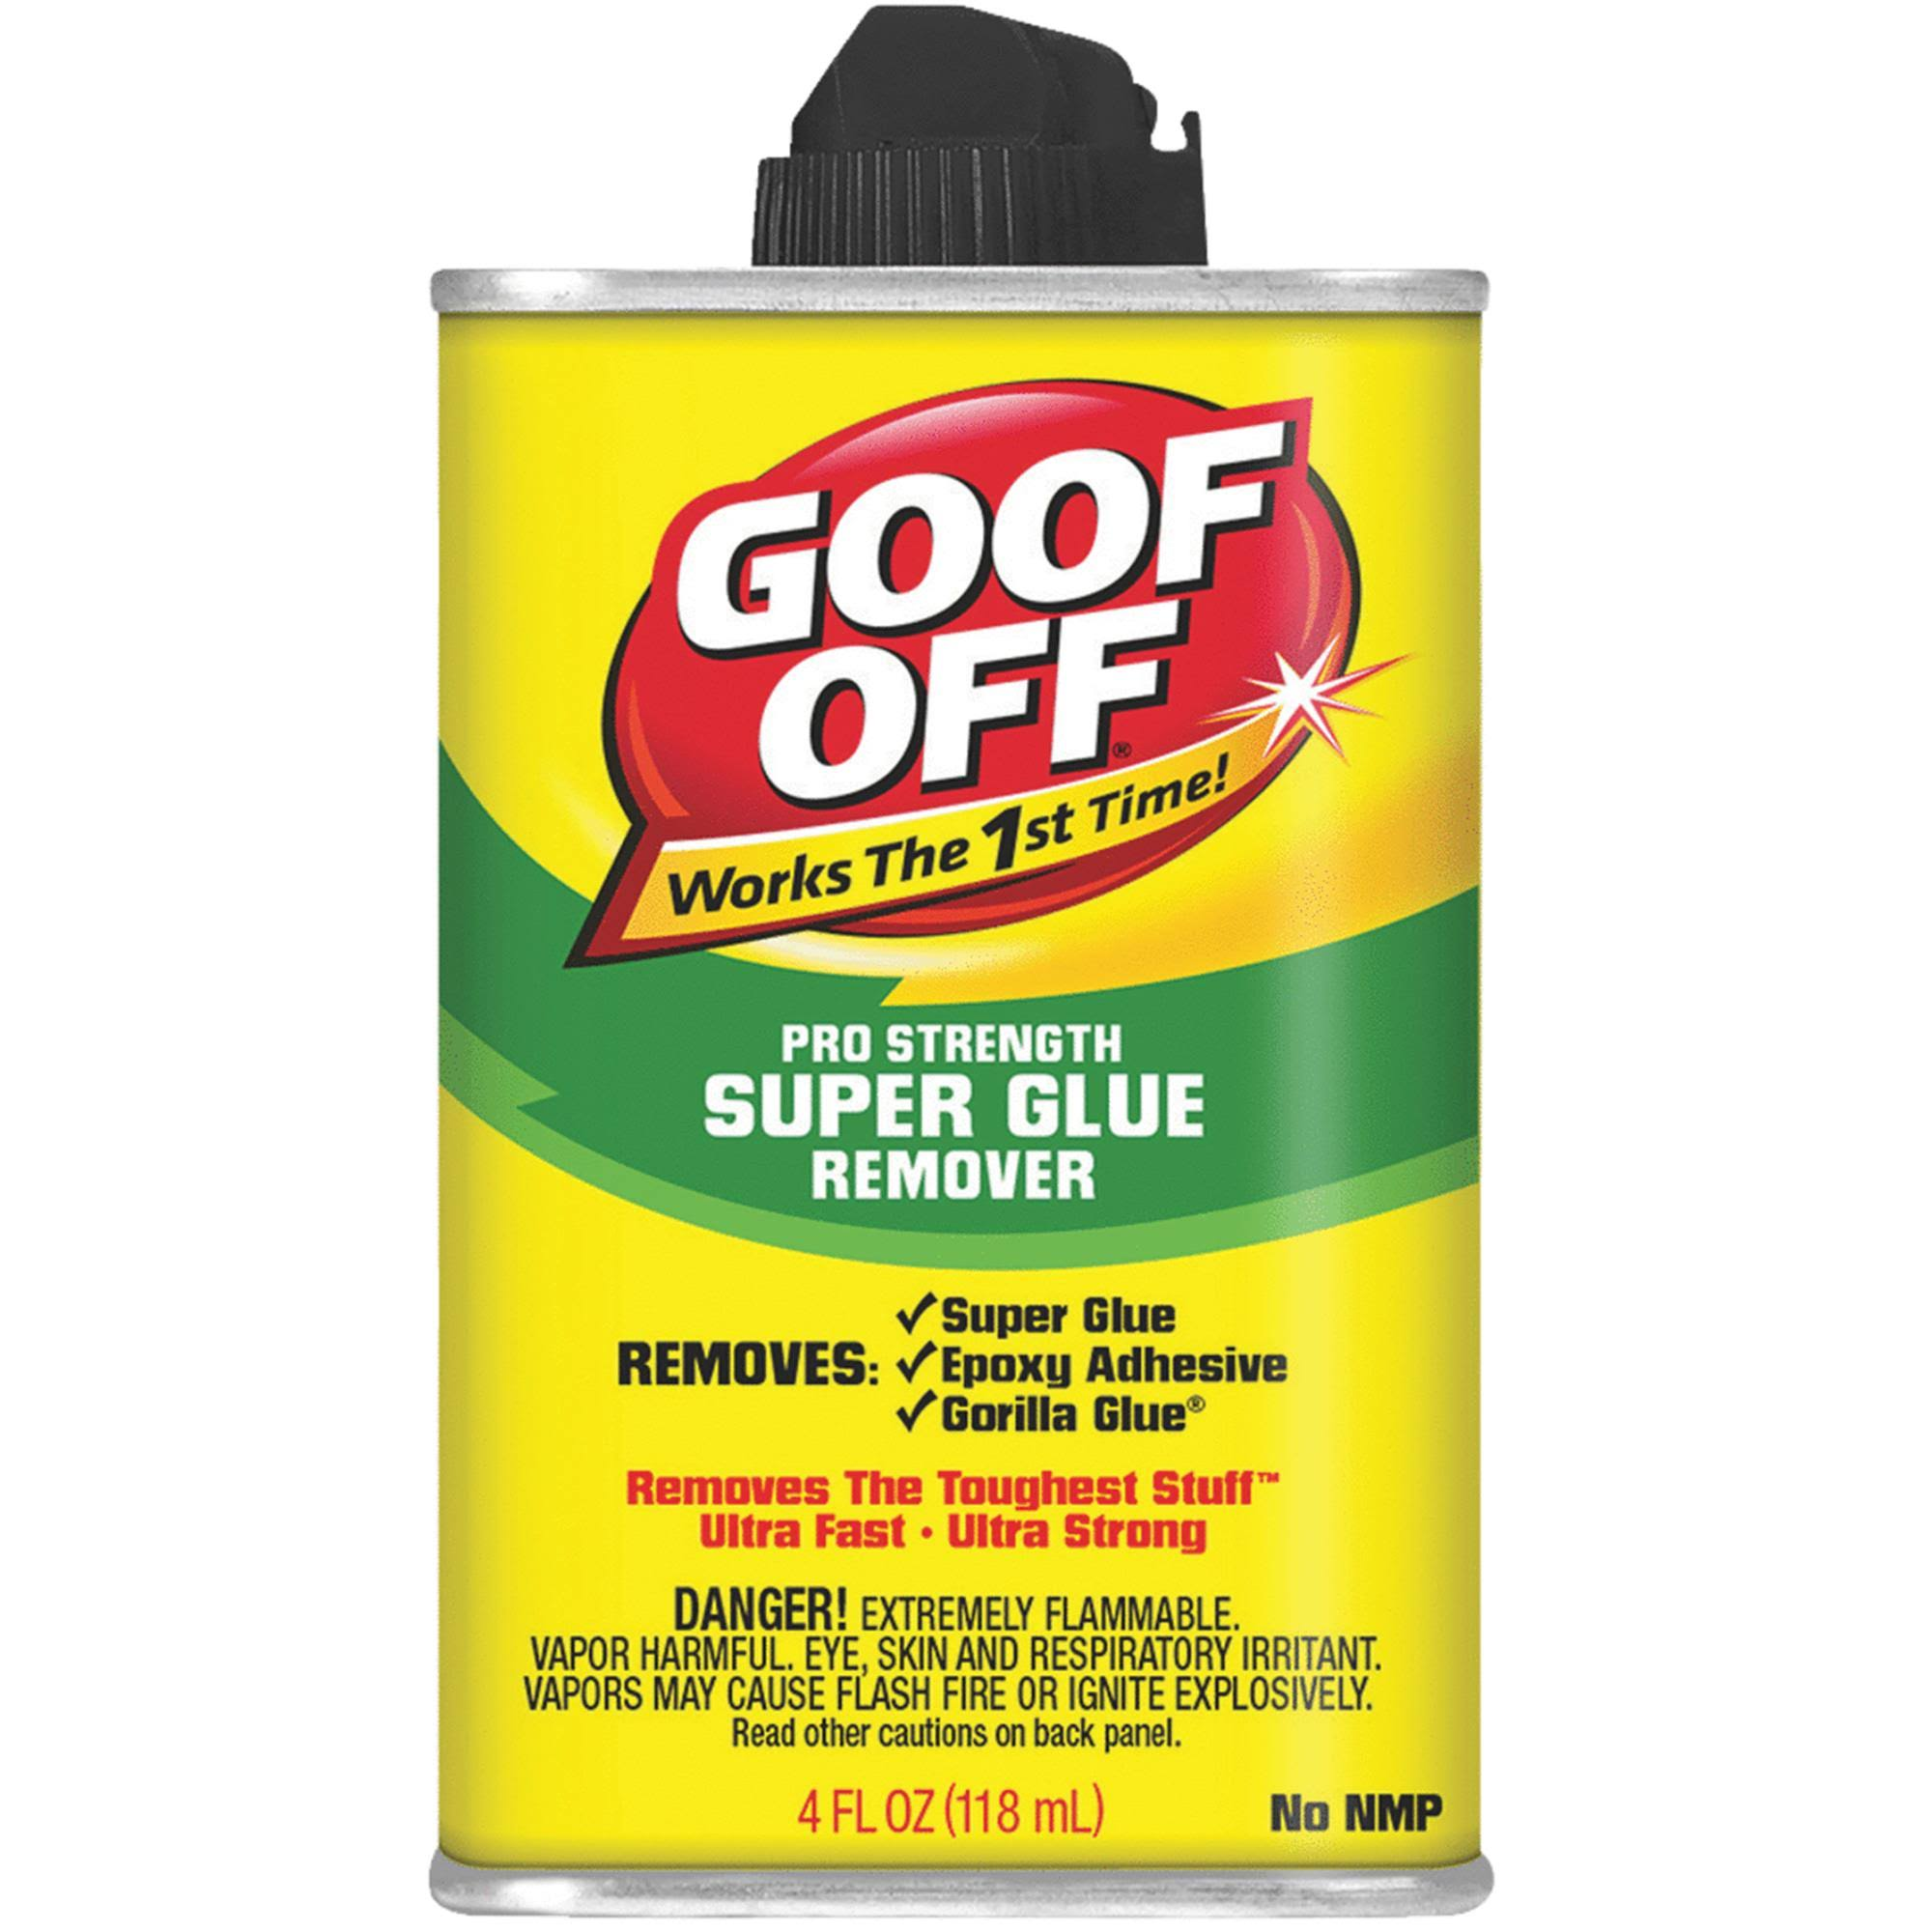 Goof Off Pro Strength 4 oz Super Glue Remover FG678